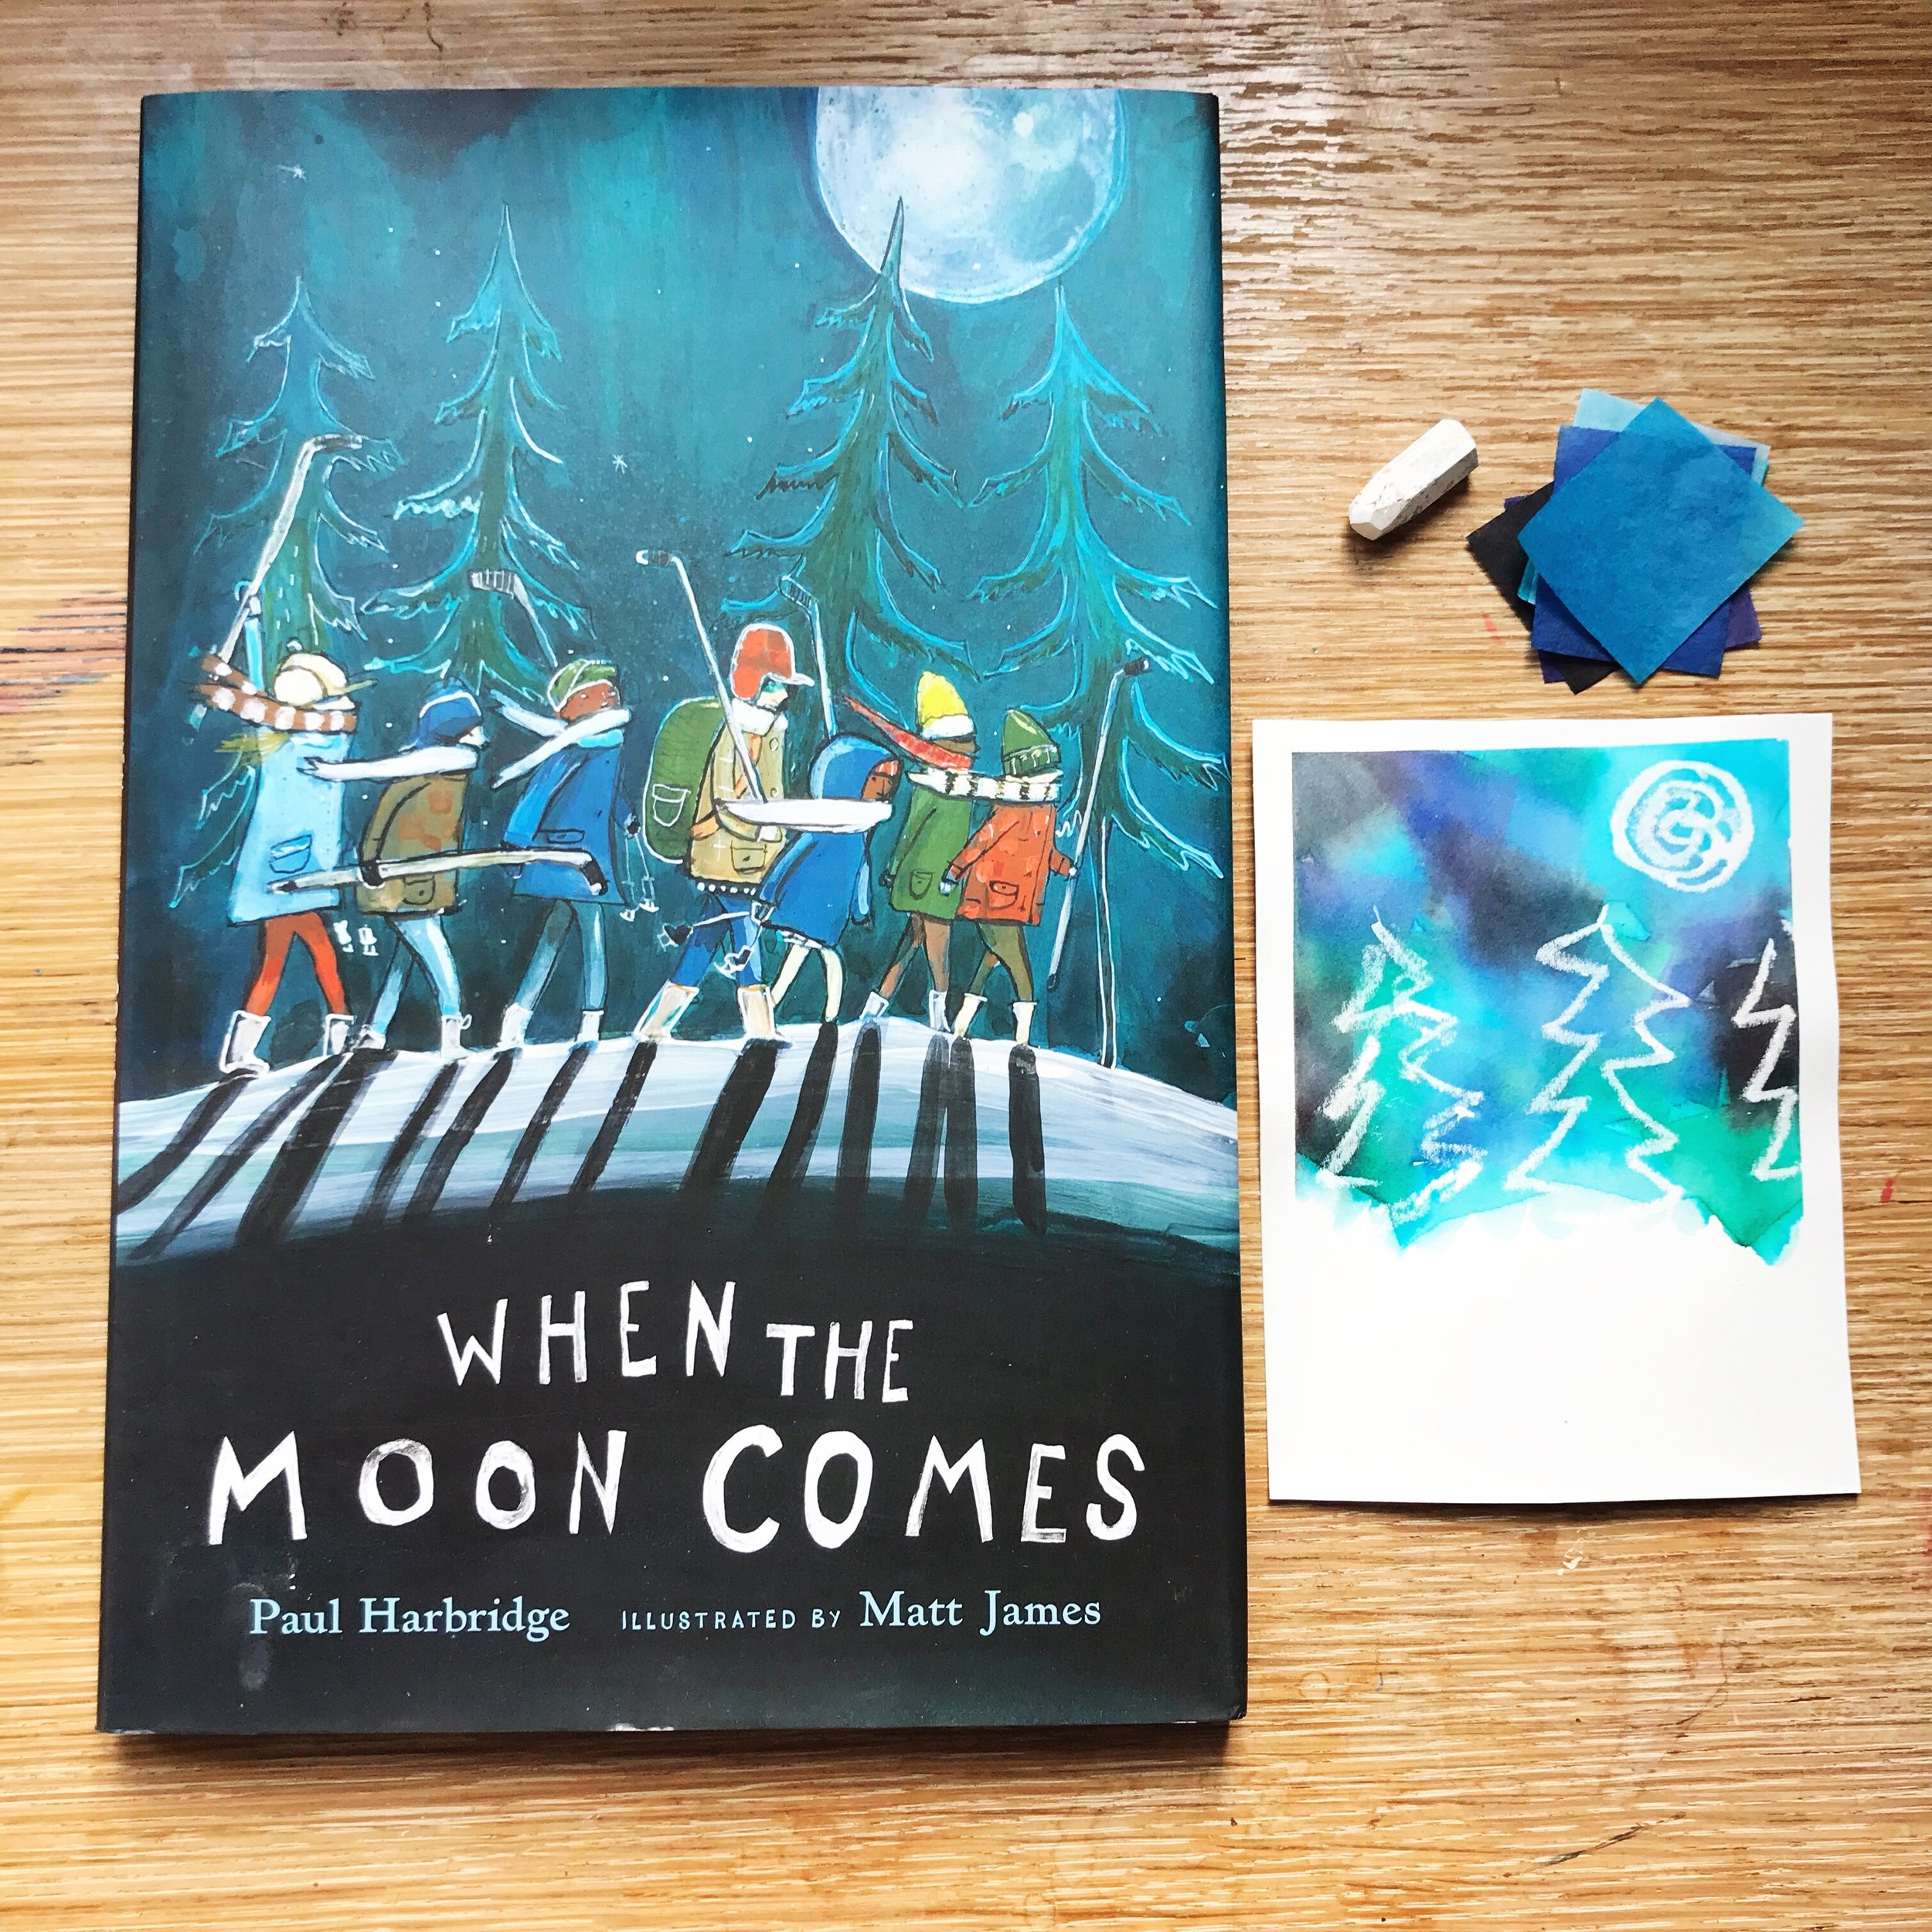 When the Moon Comes  by Paul Harbridge illustrated by Matt James